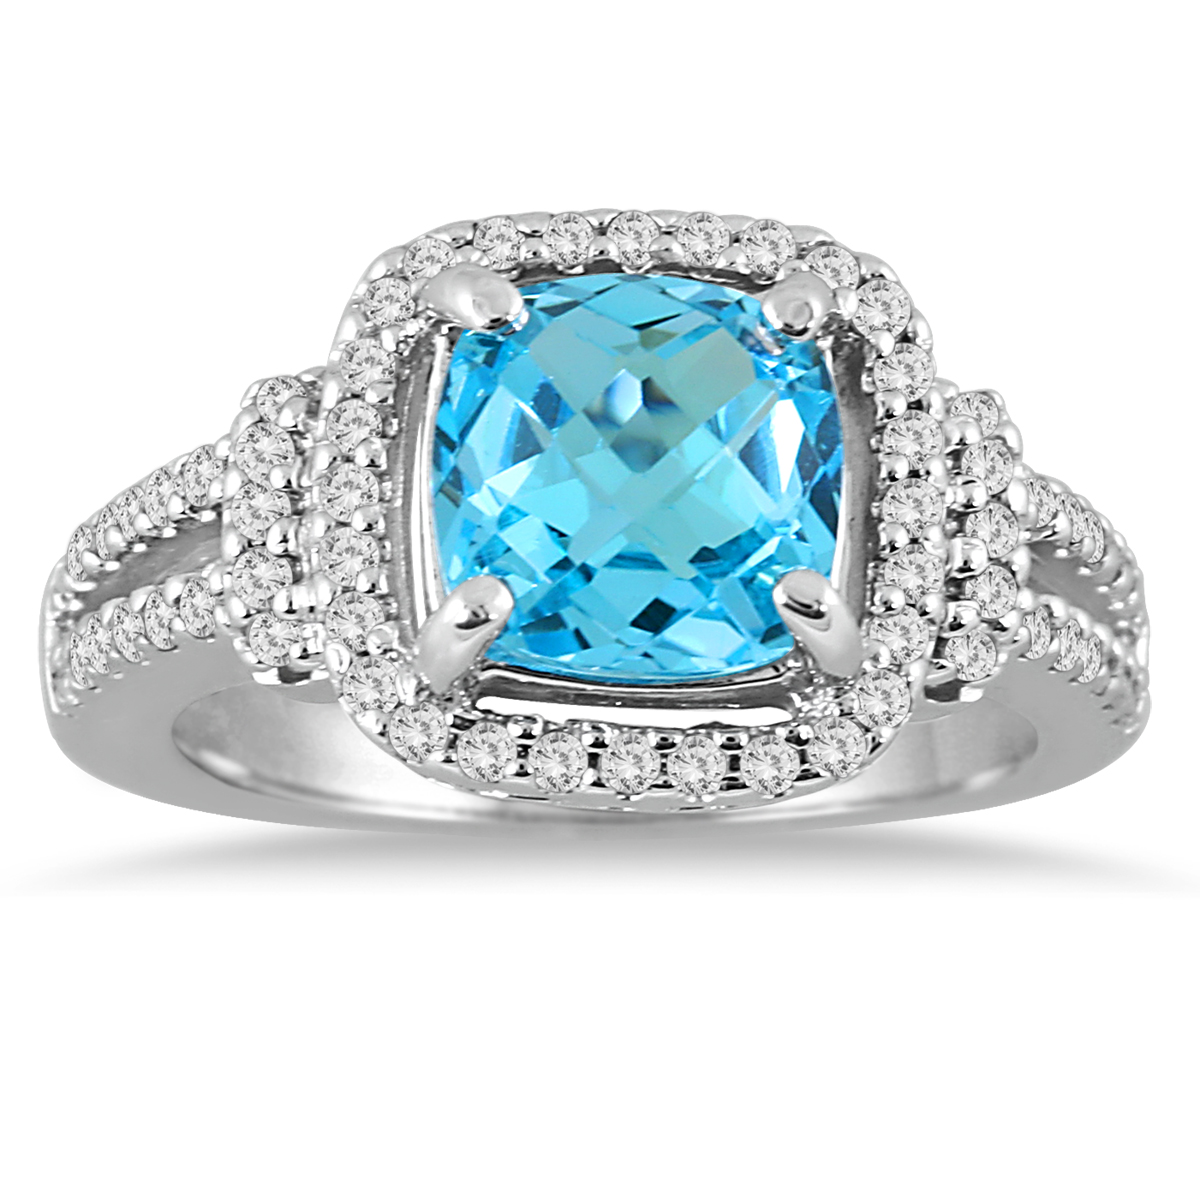 A dazzling cushion cut Blue Topaz center stone is surrounded by 62 sparkling prong set diamonds weighing 0.46 carats, color J-K-L, clarity I2-I3. This fabulous ring is crafted in smooth 10K white gold. Center Blue Topaz measures 8MM in diameter and weighs approximately 2.65 carat. Top of the line workmanship, an natural blue topaz, genuine diamonds and gold combine to make this a quality ring guaranteed to last forever.